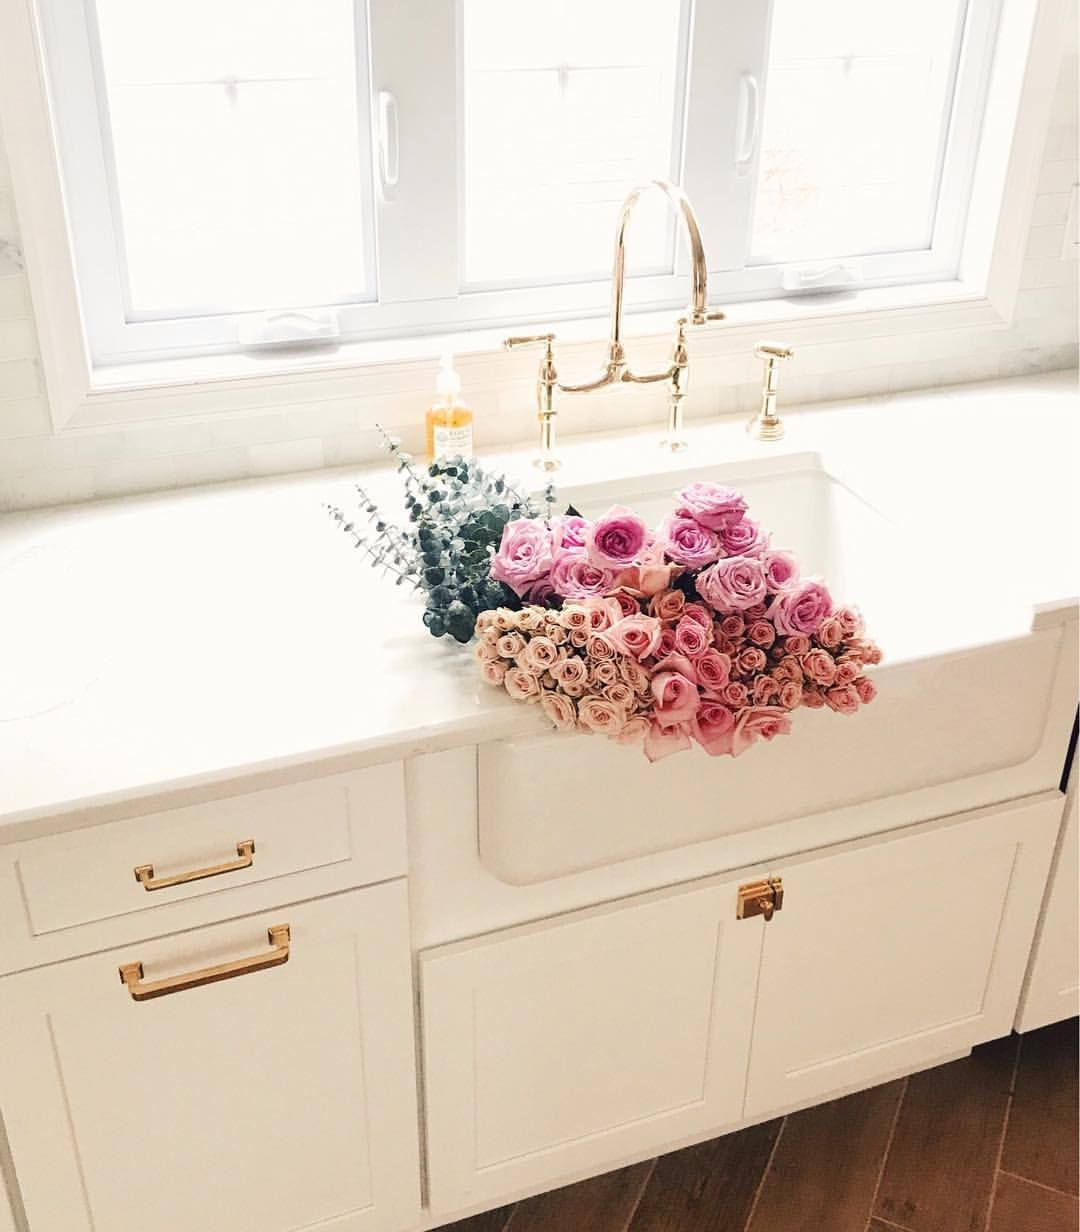 Nothing Better Than A Sink Full Of Flowers @liketoknow.it